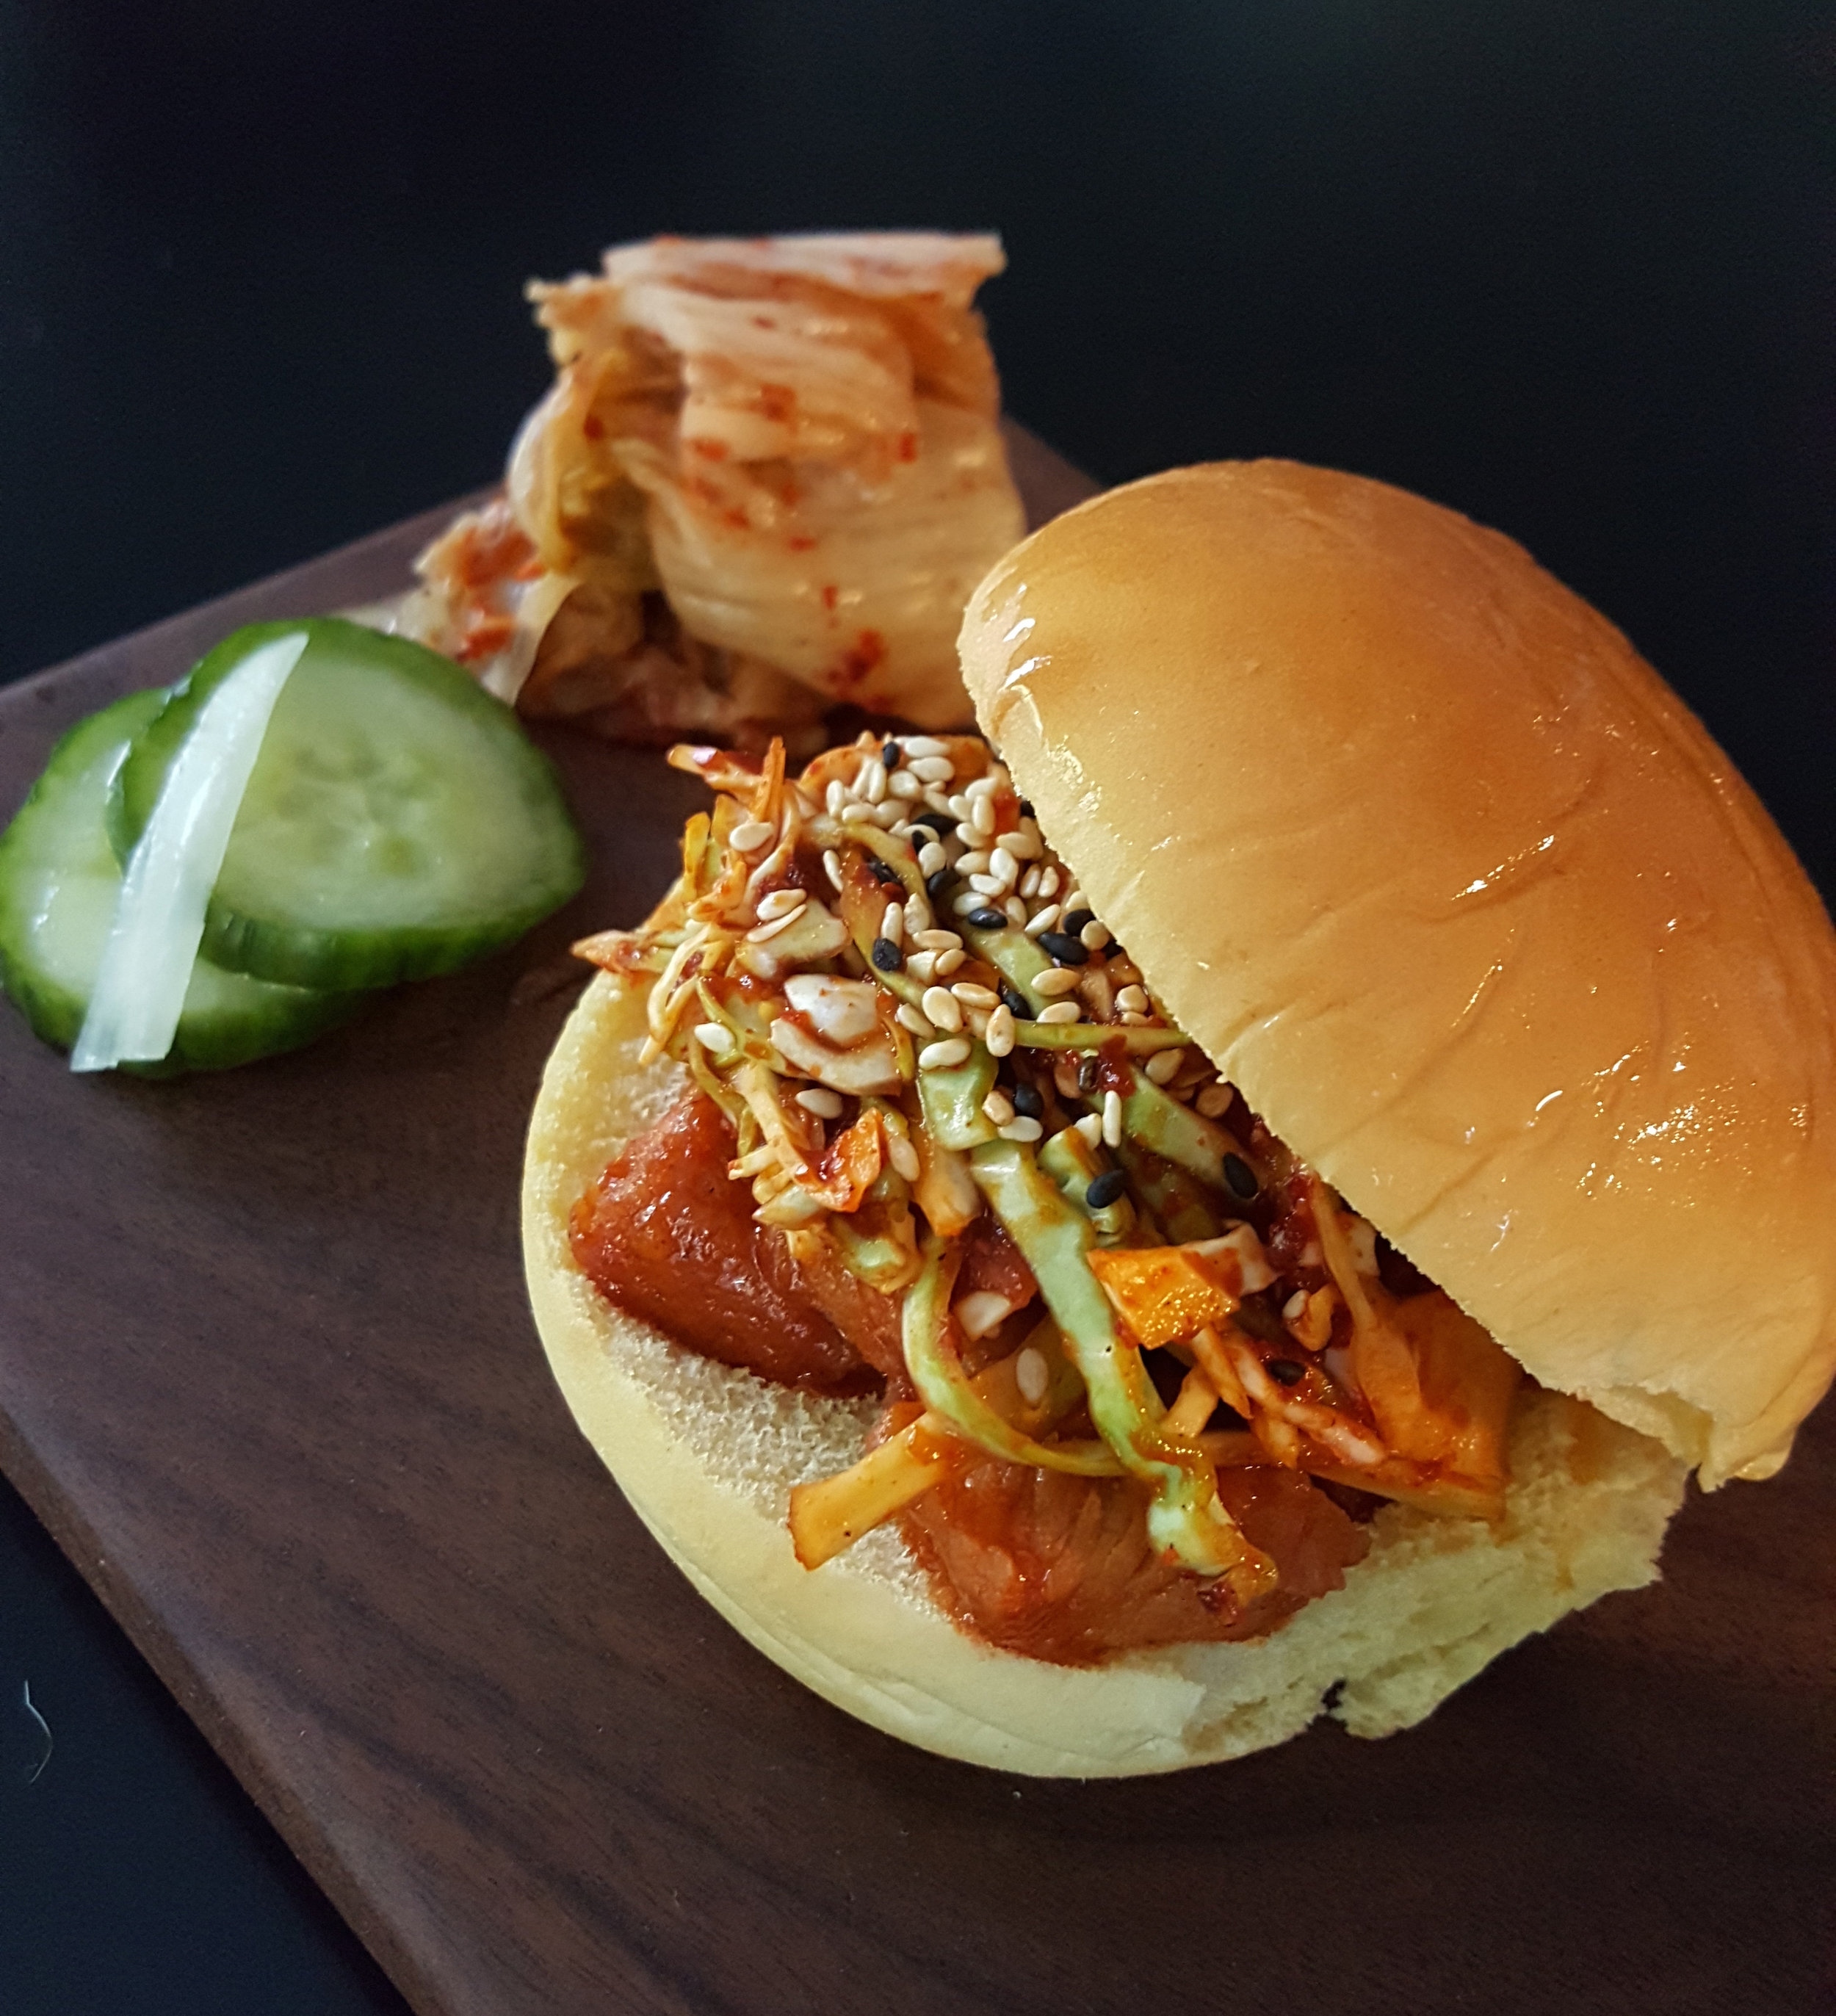 Atlanta Chef Jiyeon Lee's Spicy Korean Pork Sliders